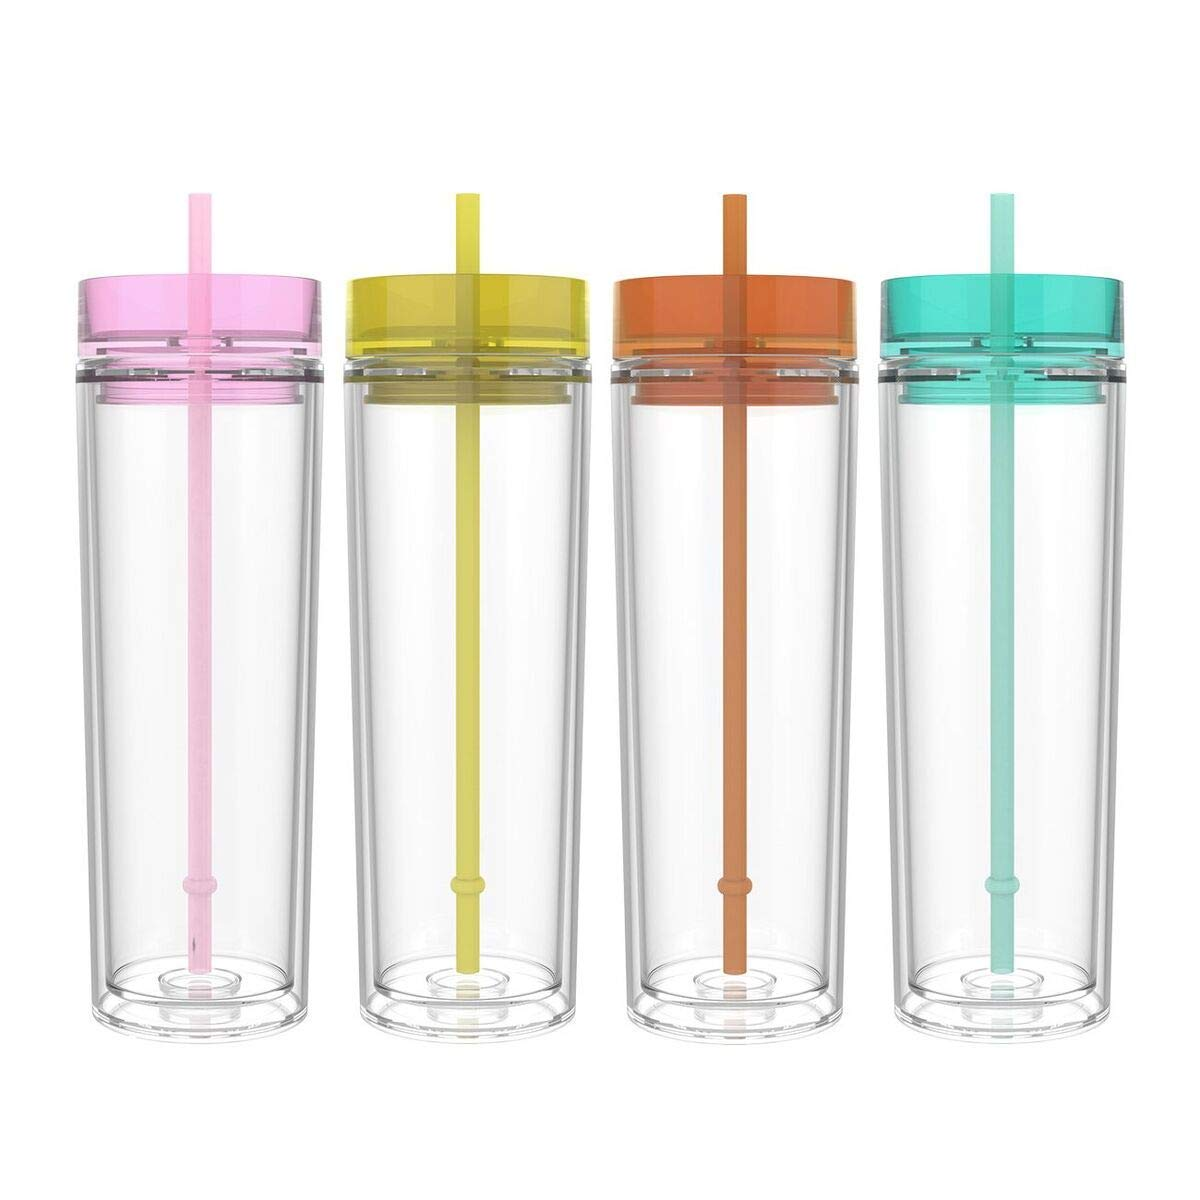 76ae7741e97 Get Quotations · Maars Classic Insulated Skinny Tumblers 16 oz. | Double  Wall Acrylic | 4 pack